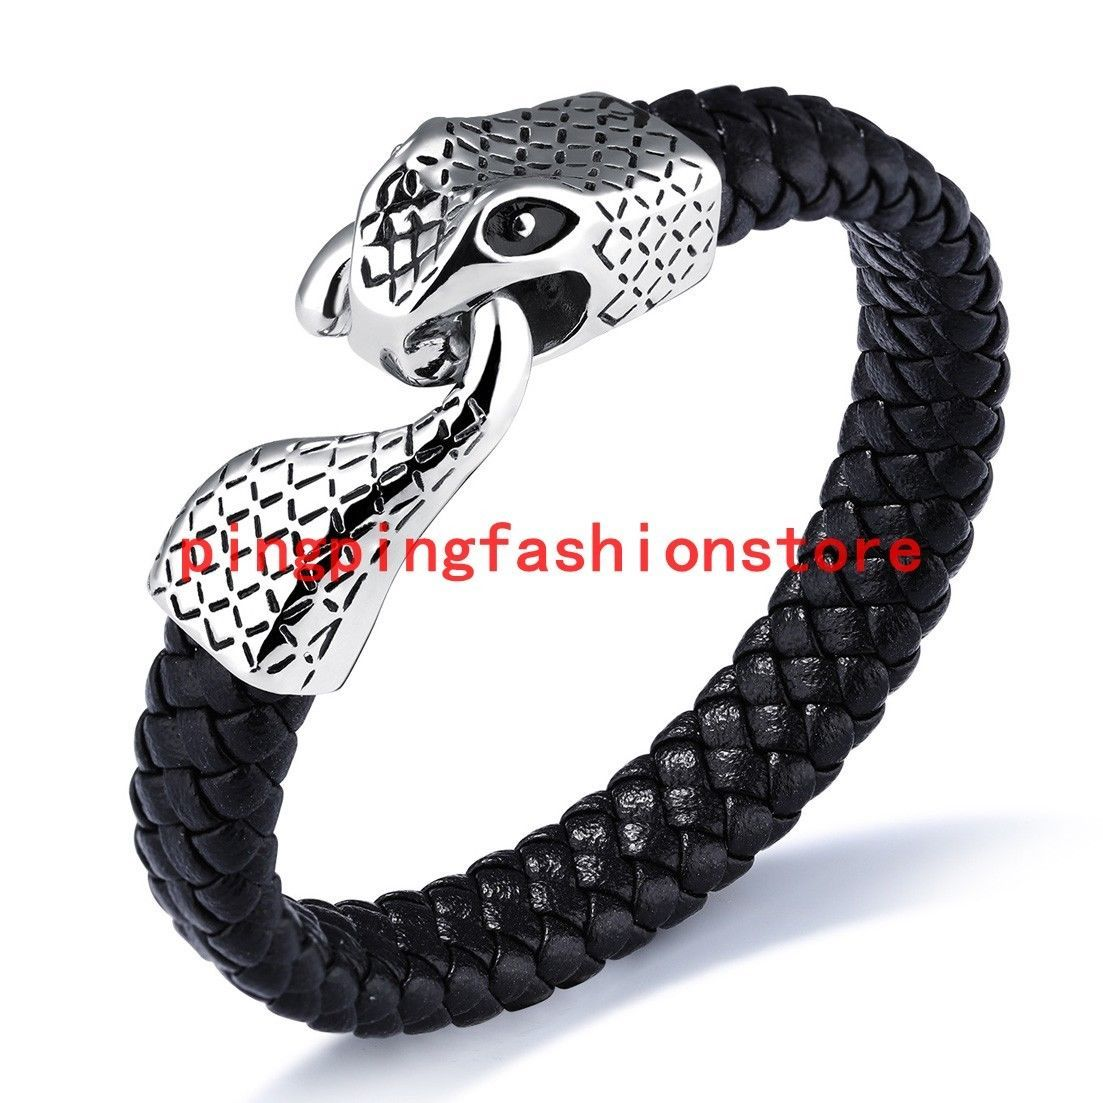 Menus stainless steel silver snake clasp genuine leather wristband